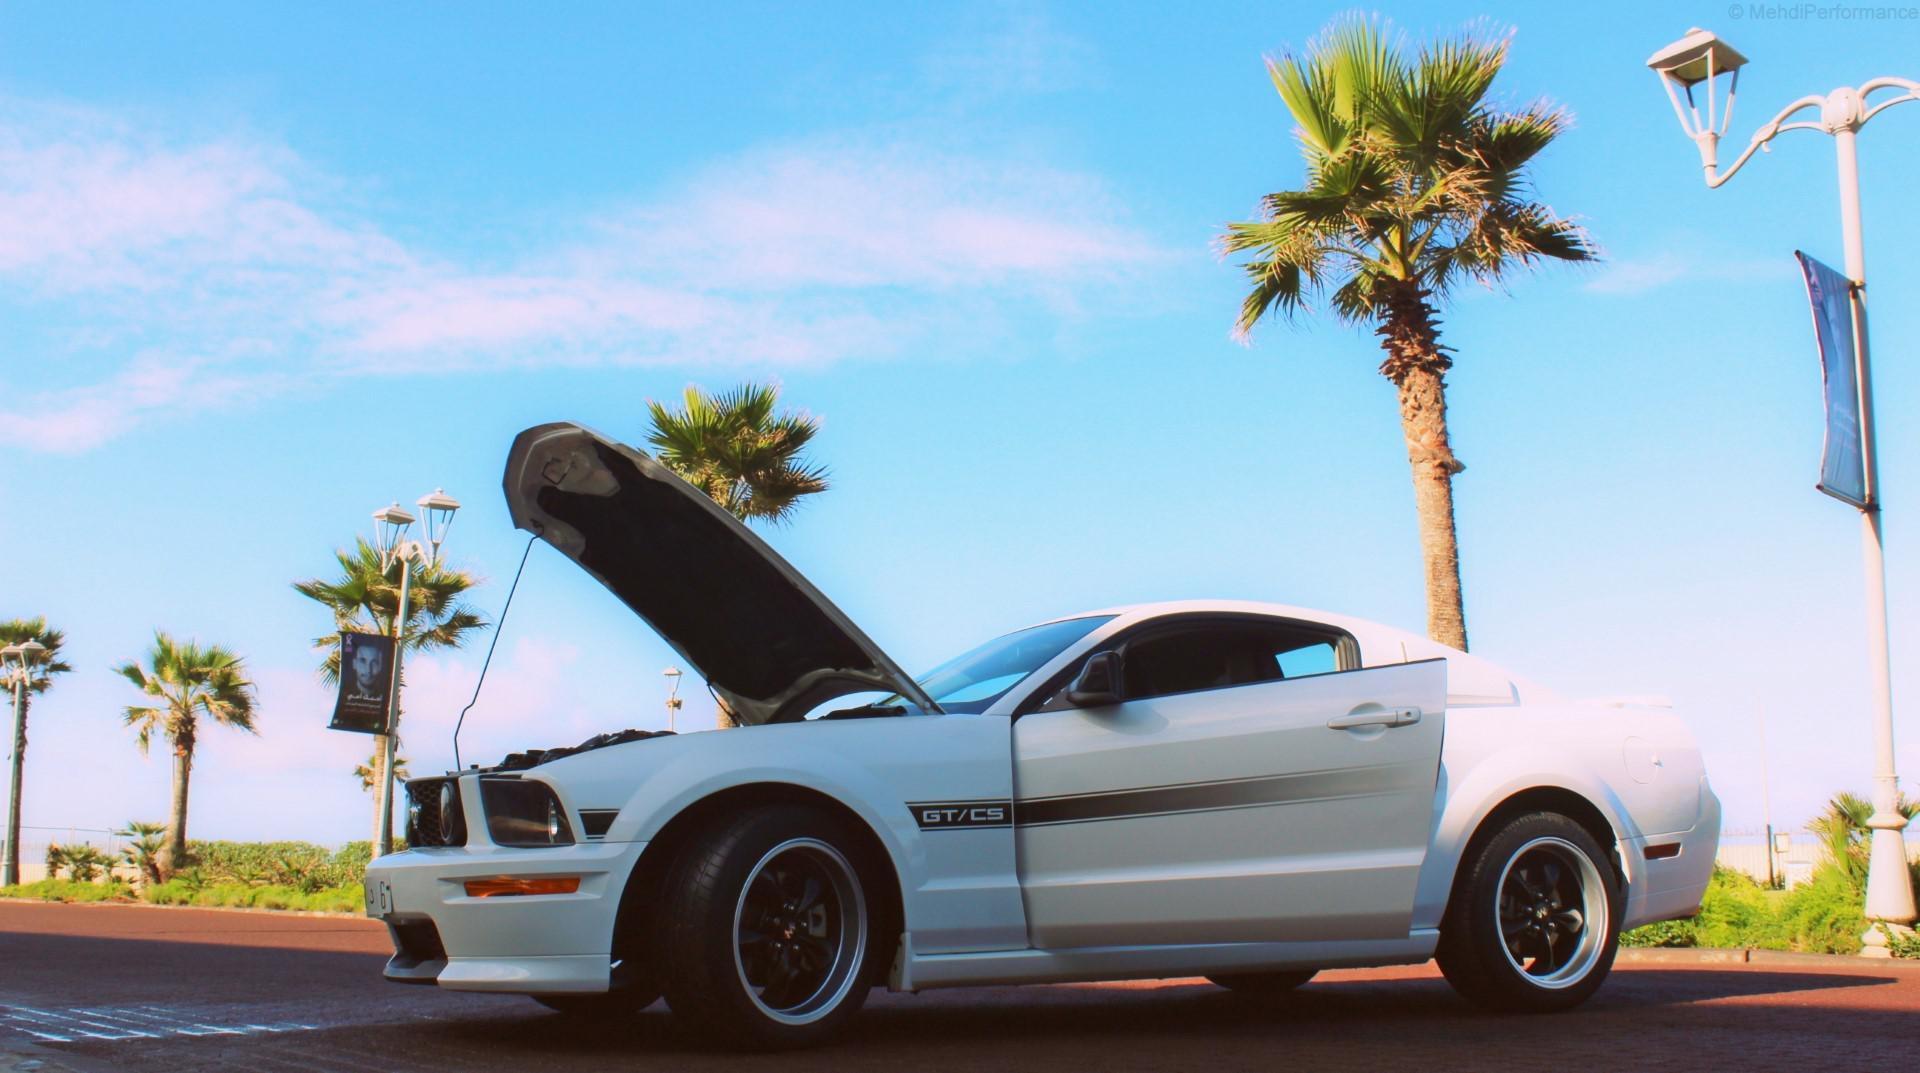 serie-speciale-au-maroc-ford-mustang-gt-v8-4-6l-california-special-manuelle-458-13.jpg